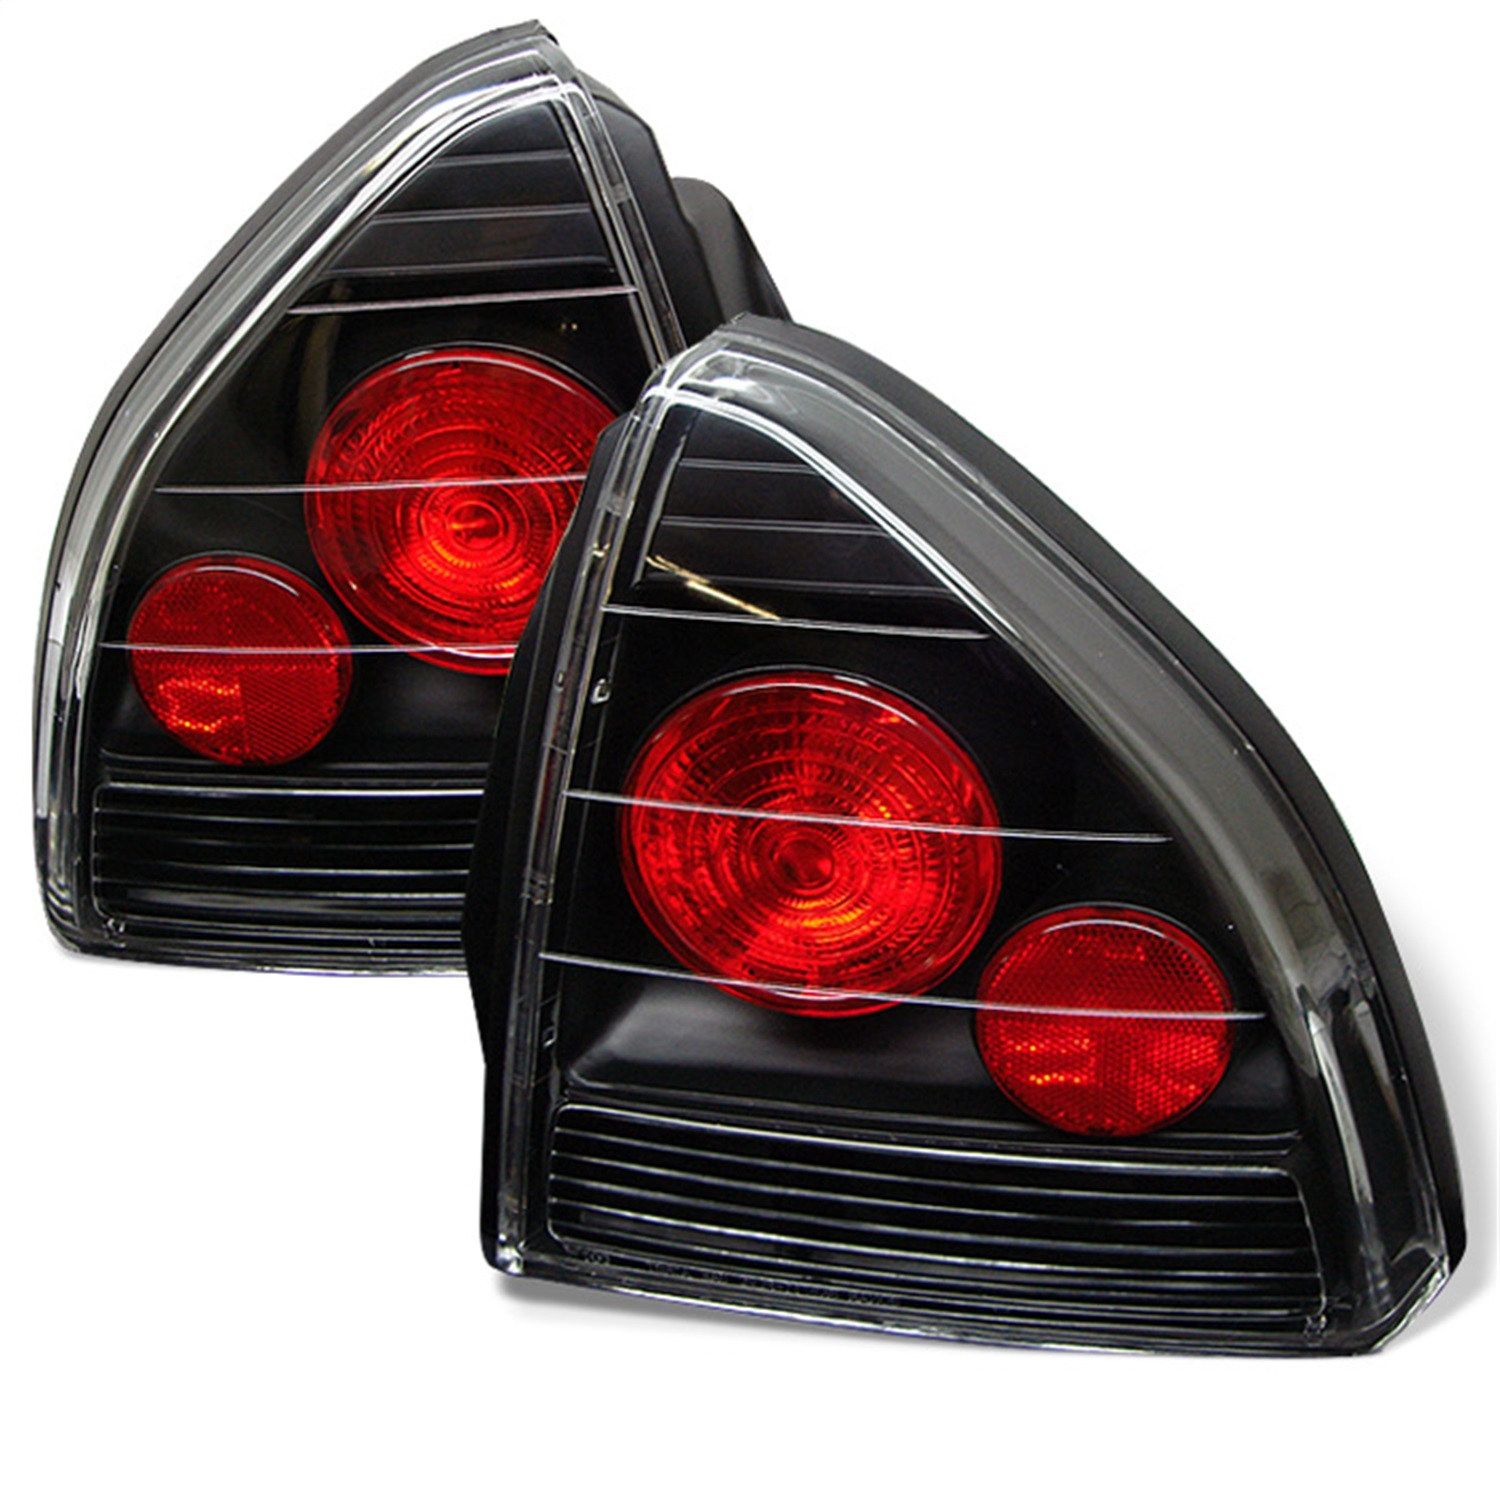 Spyder Auto 5005229 Euro Style Tail Lights Fits 92-96 Prelude